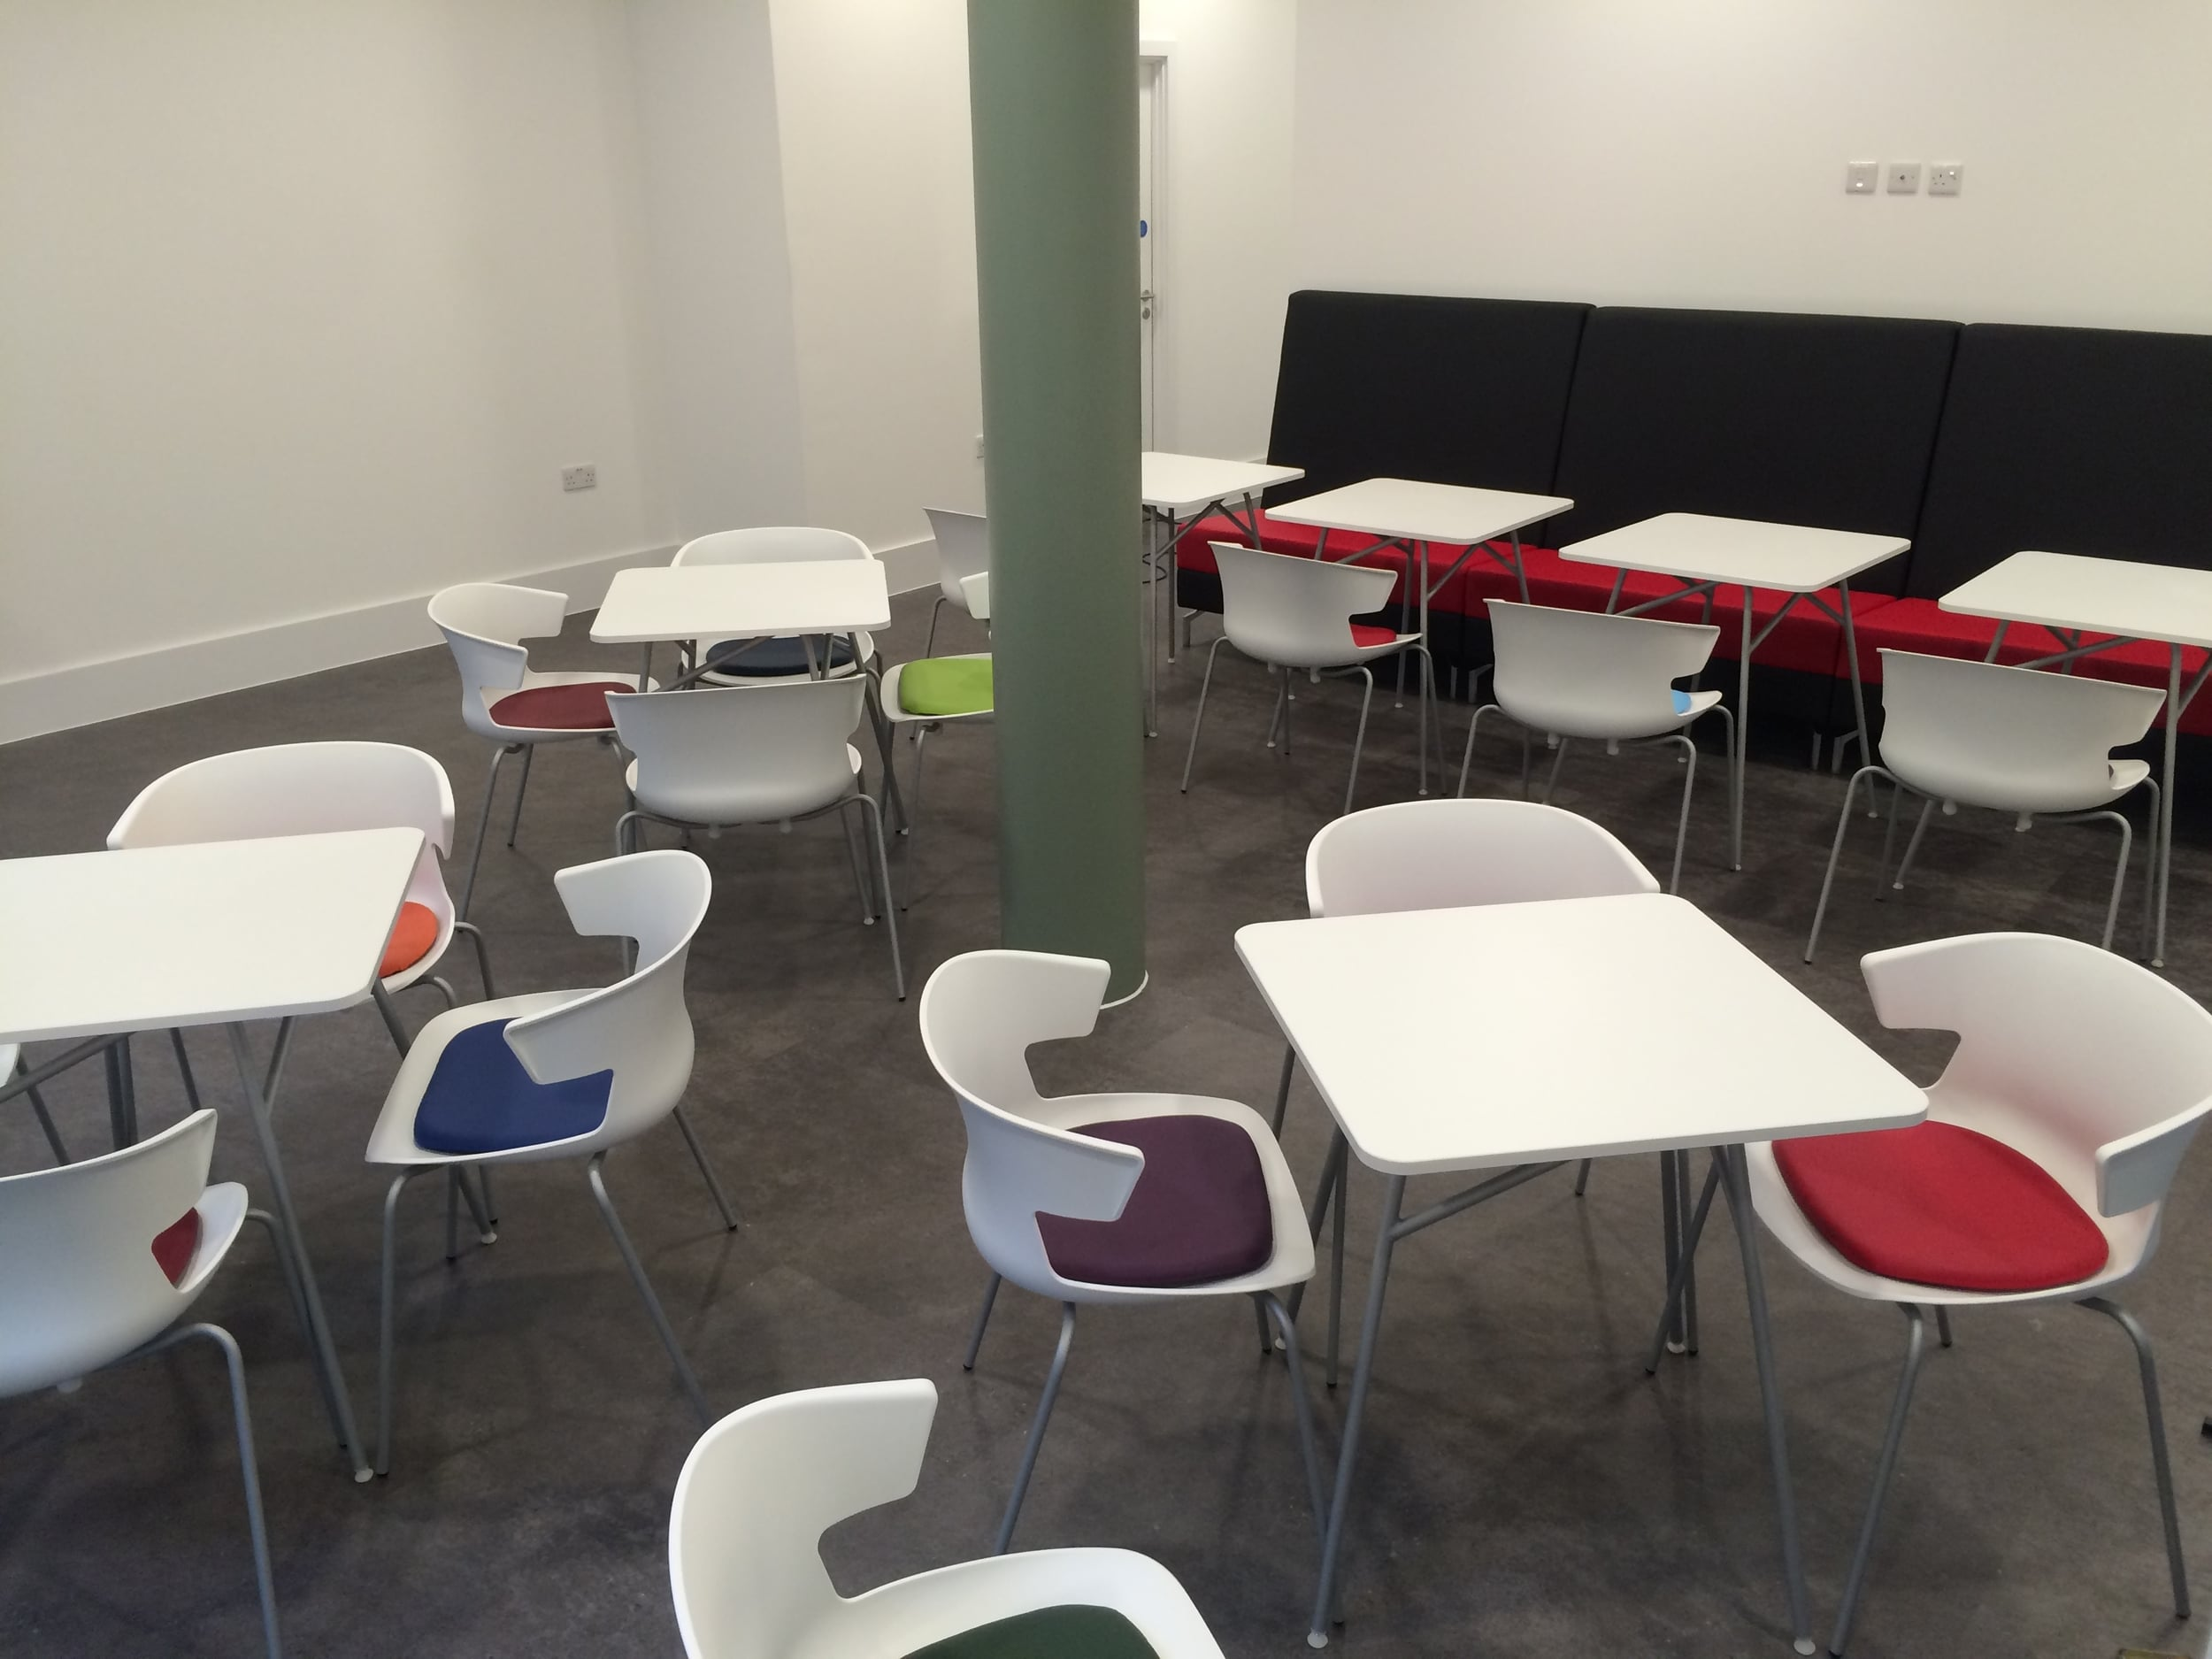 The canteen was going to be a high-traffic area so any furniture we provided had to be able to endure heavy use and have a long life. So we supplied furniture that was not only attractive and comfortable but robust and easy to maintain.